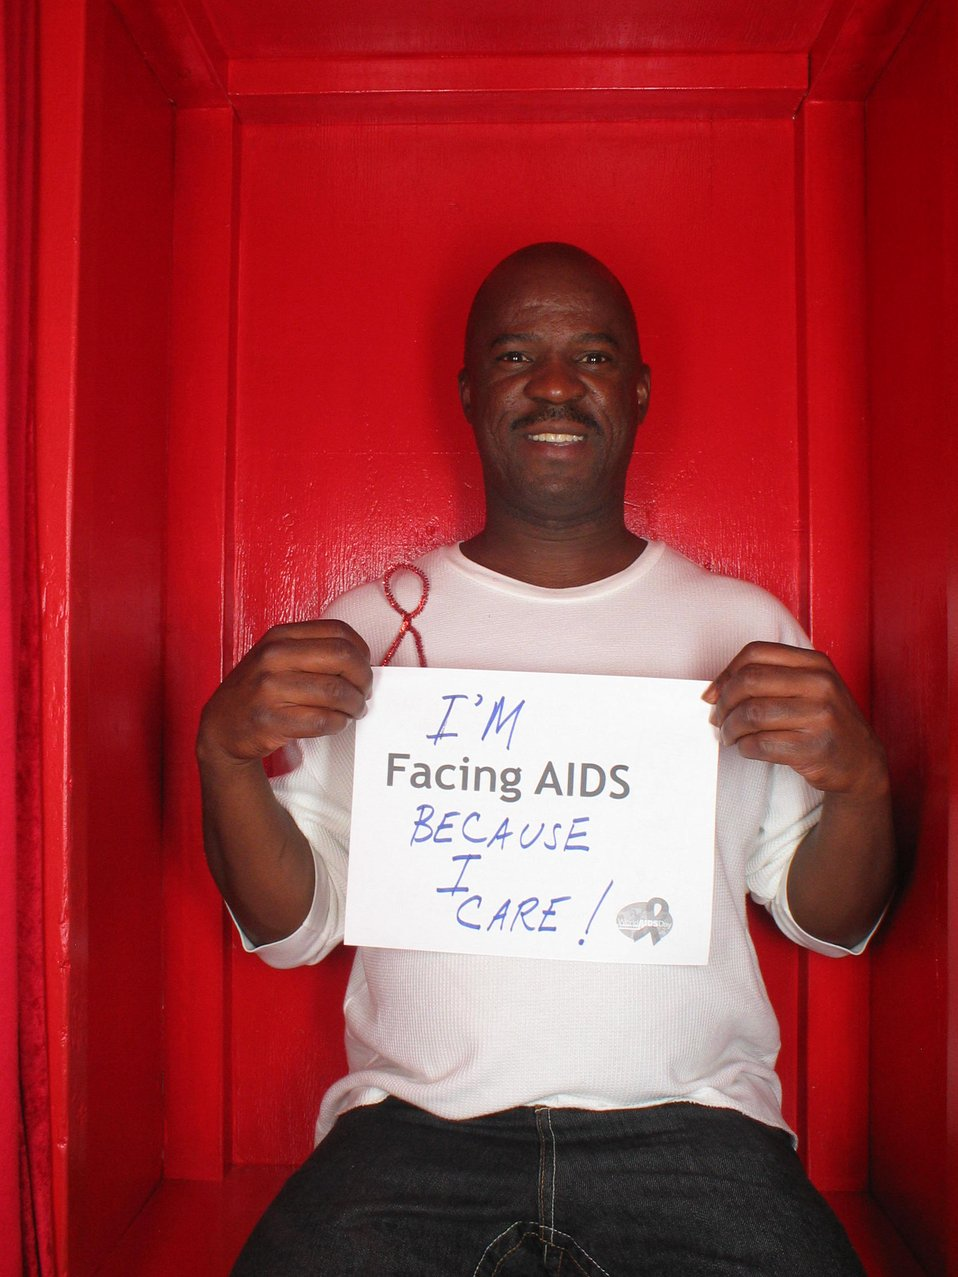 I'm Facing AIDS because I care!